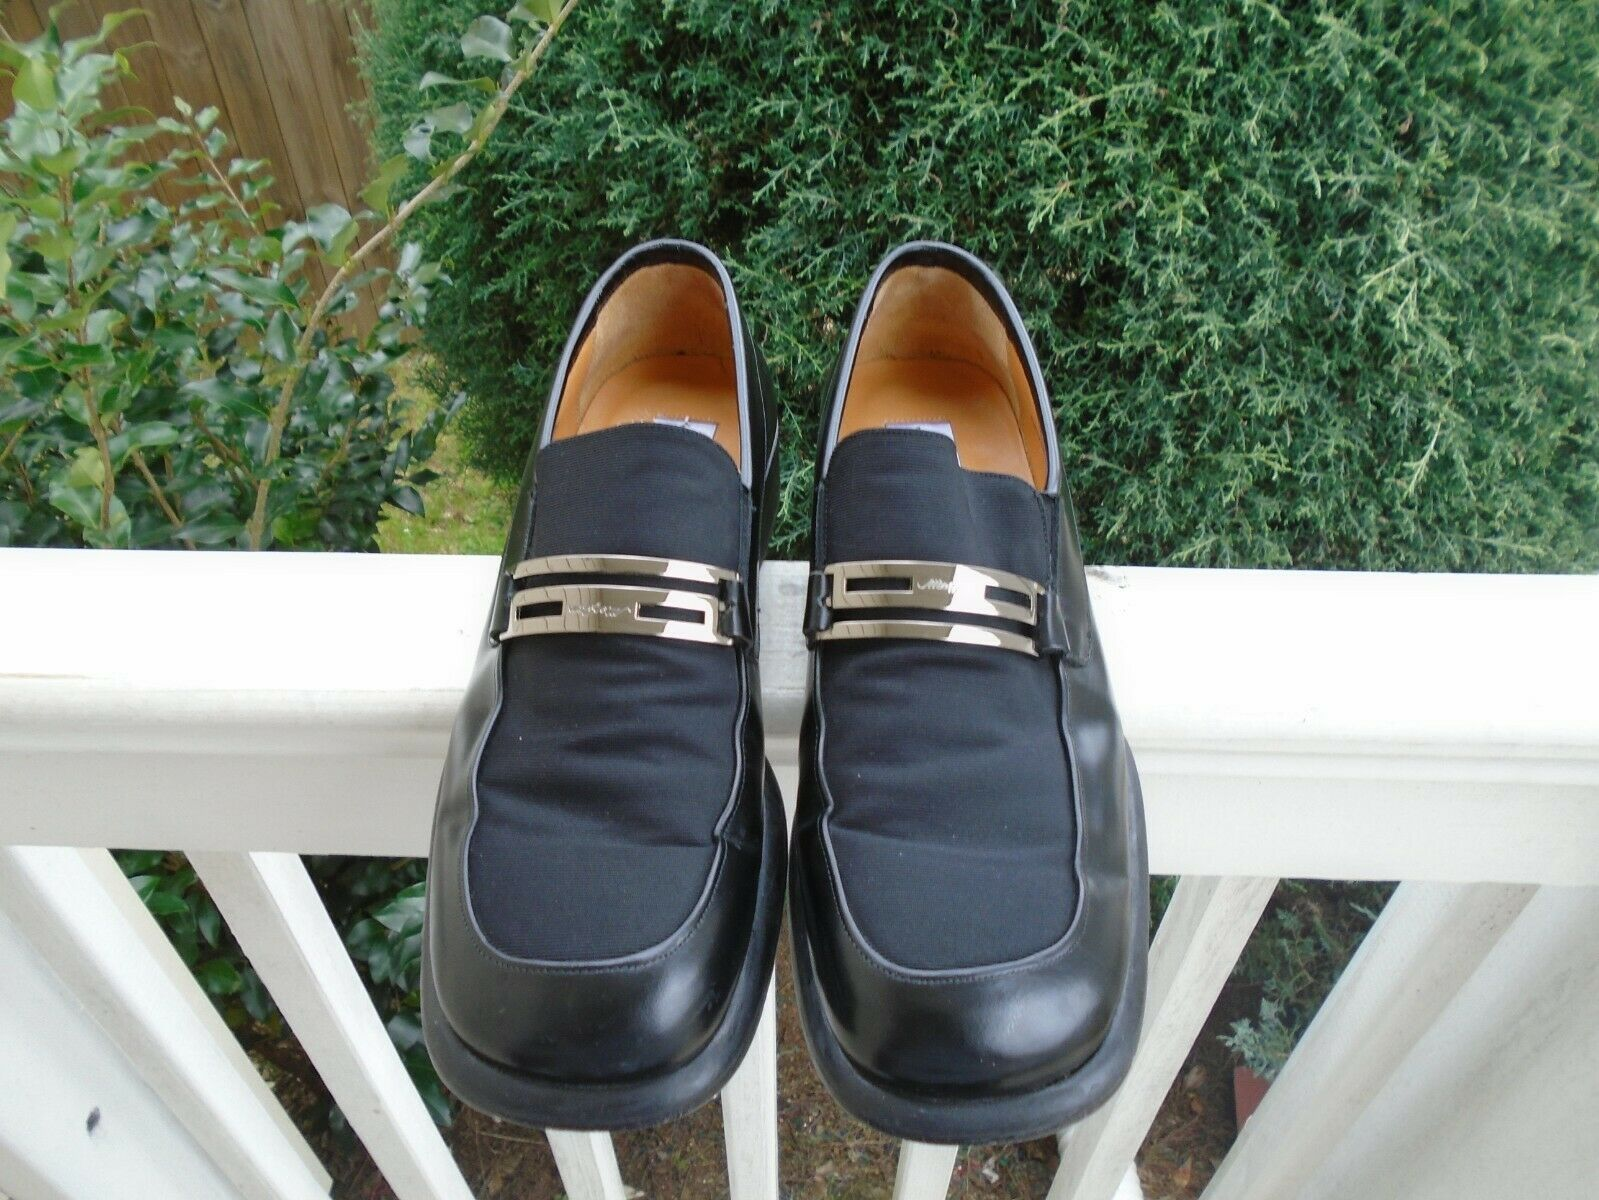 Mezlan Catano Leather Slip On Black leather fabric loafer dress shoes sz 10